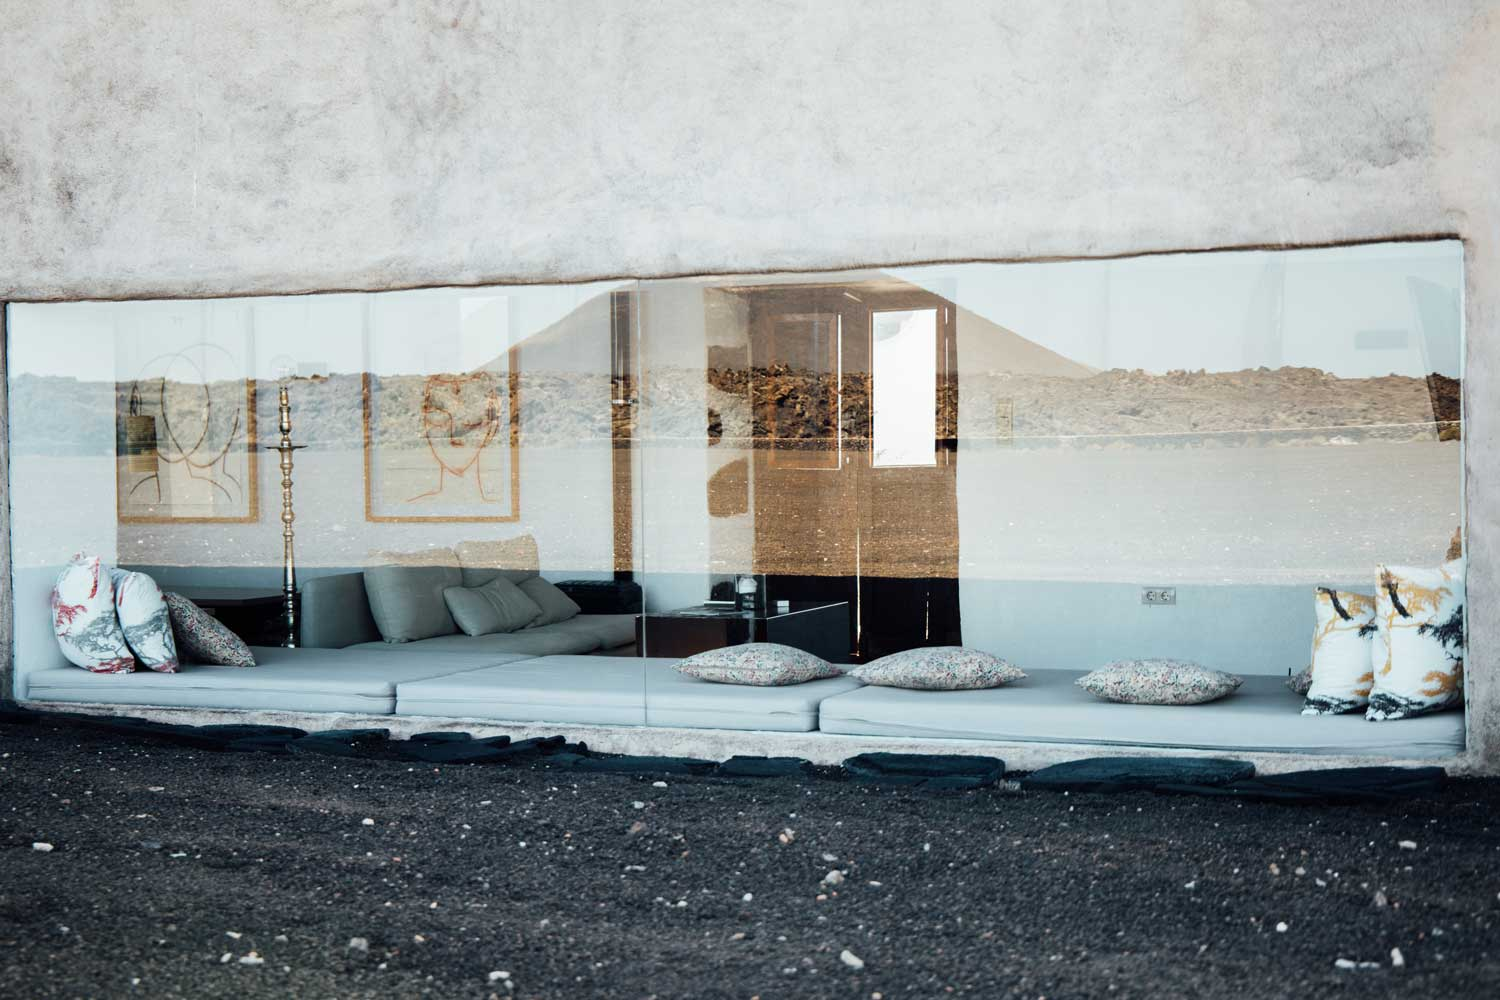 The layout mirroring the breathtaking volcanic landscape at Buena Vista Country Suites, Lanzarote.